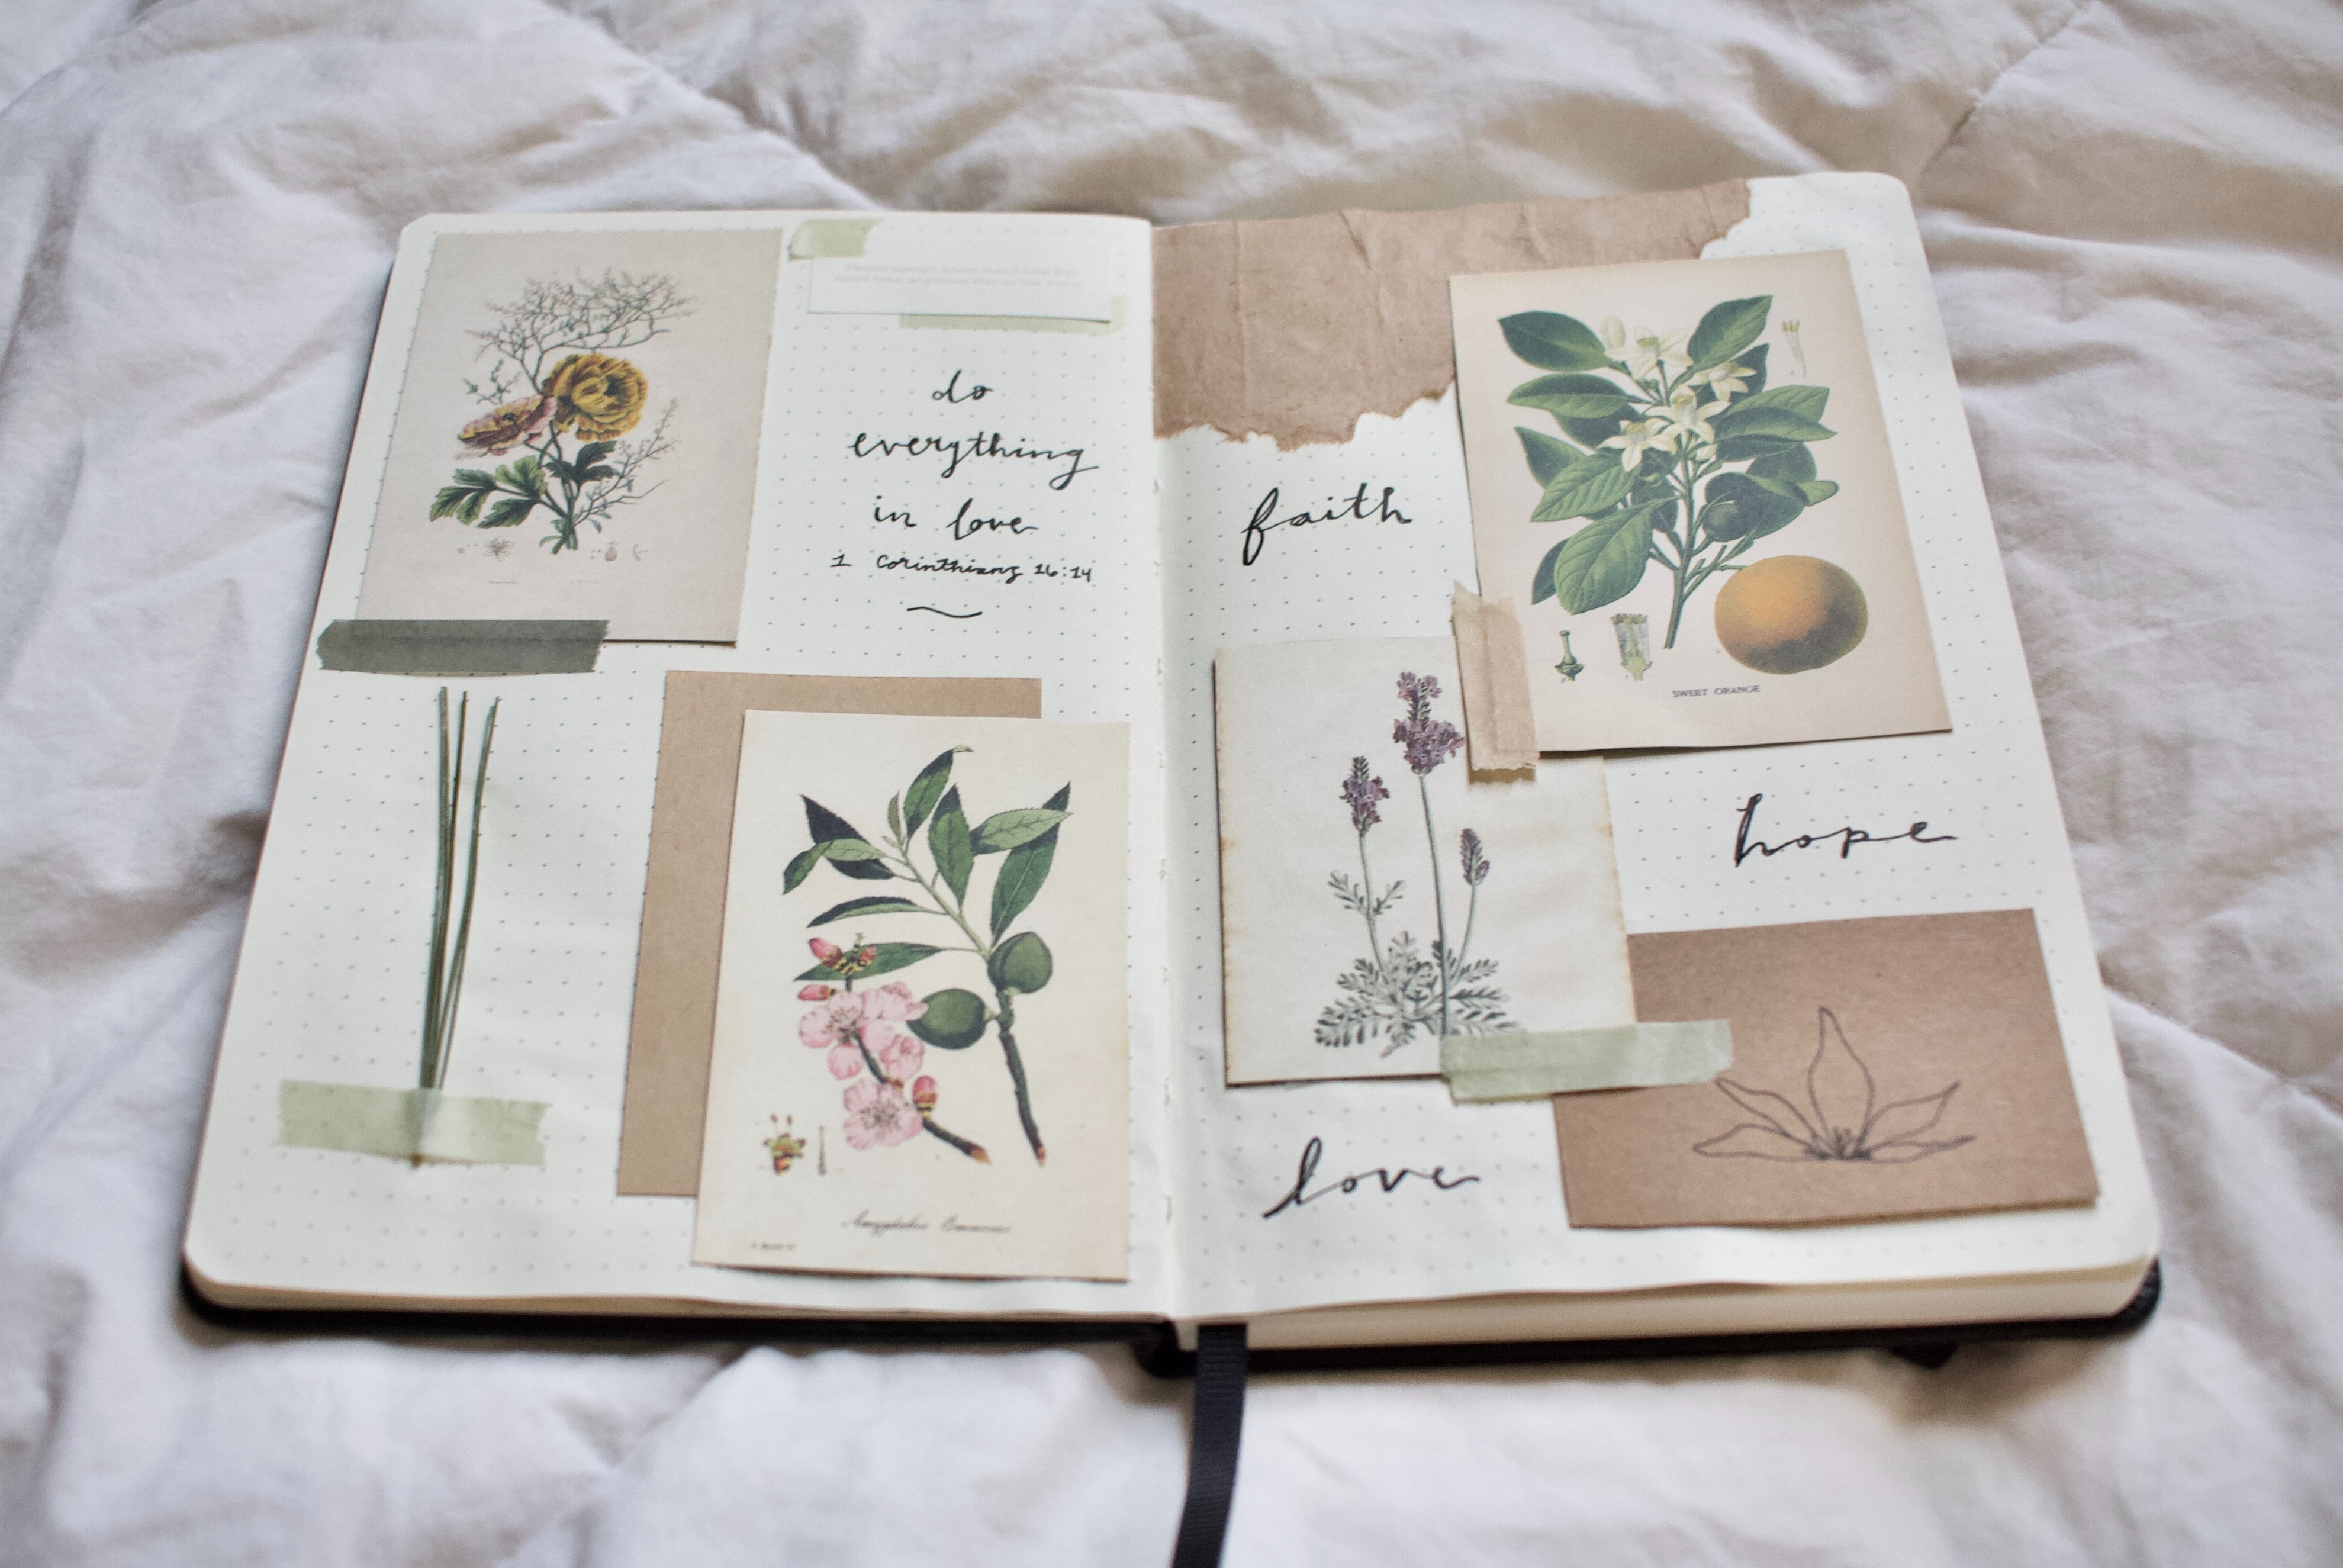 A bullet journal spread that has cut out pictures of flowers glued on to the pages with grass tapped onto the pages. with a quote and words written in black cursive ink